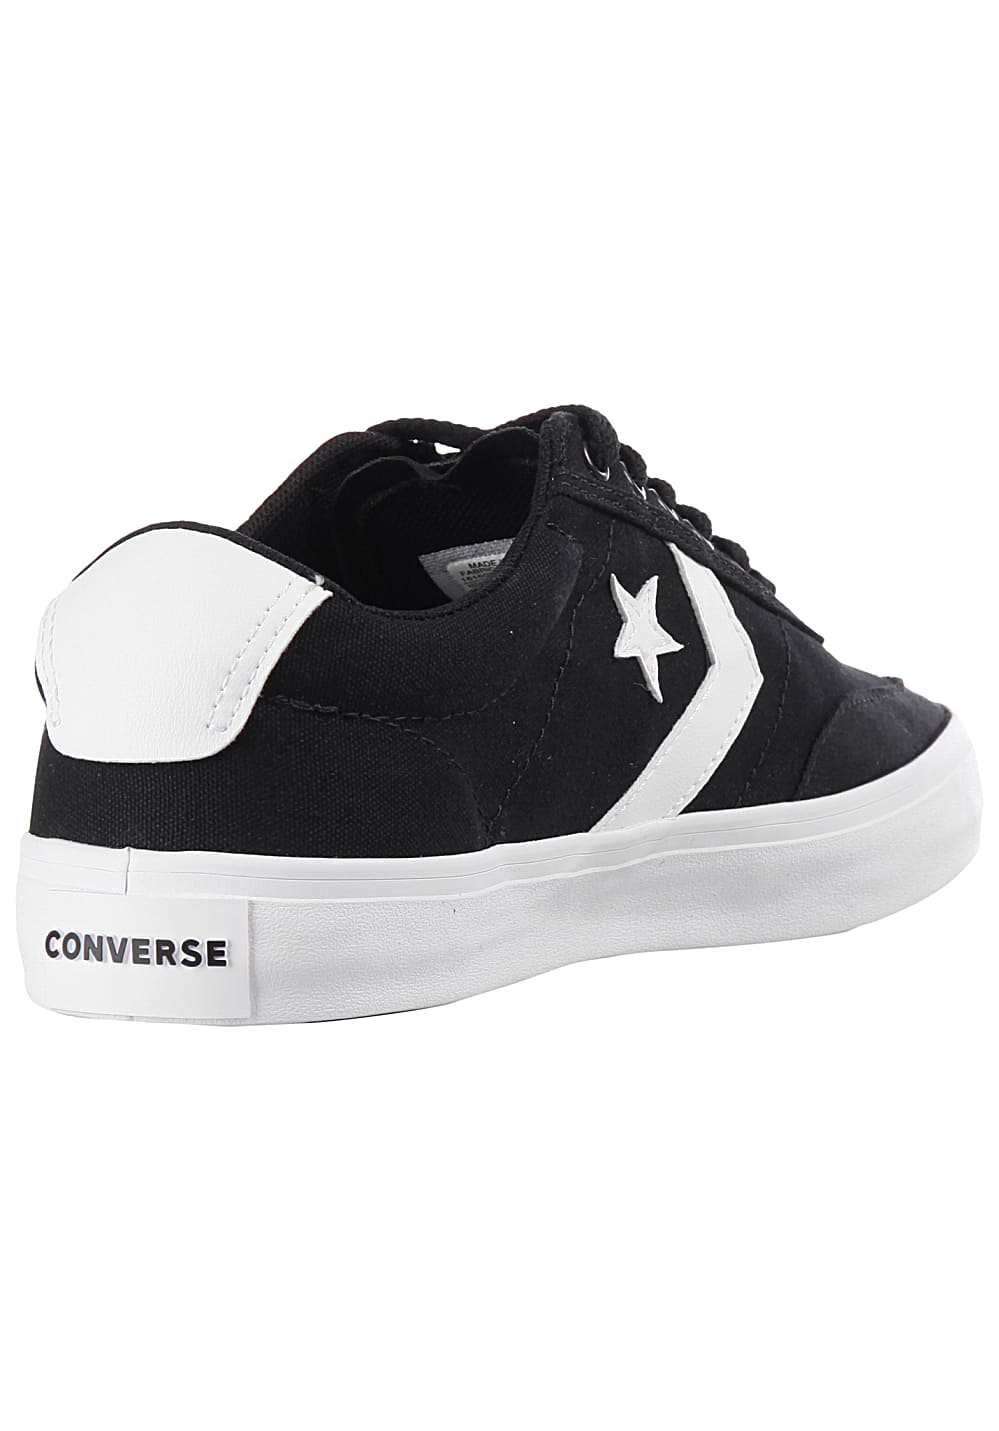 Converse Courtland OX - Sneakers for Men - Black - Planet Sports 78bc7a5797